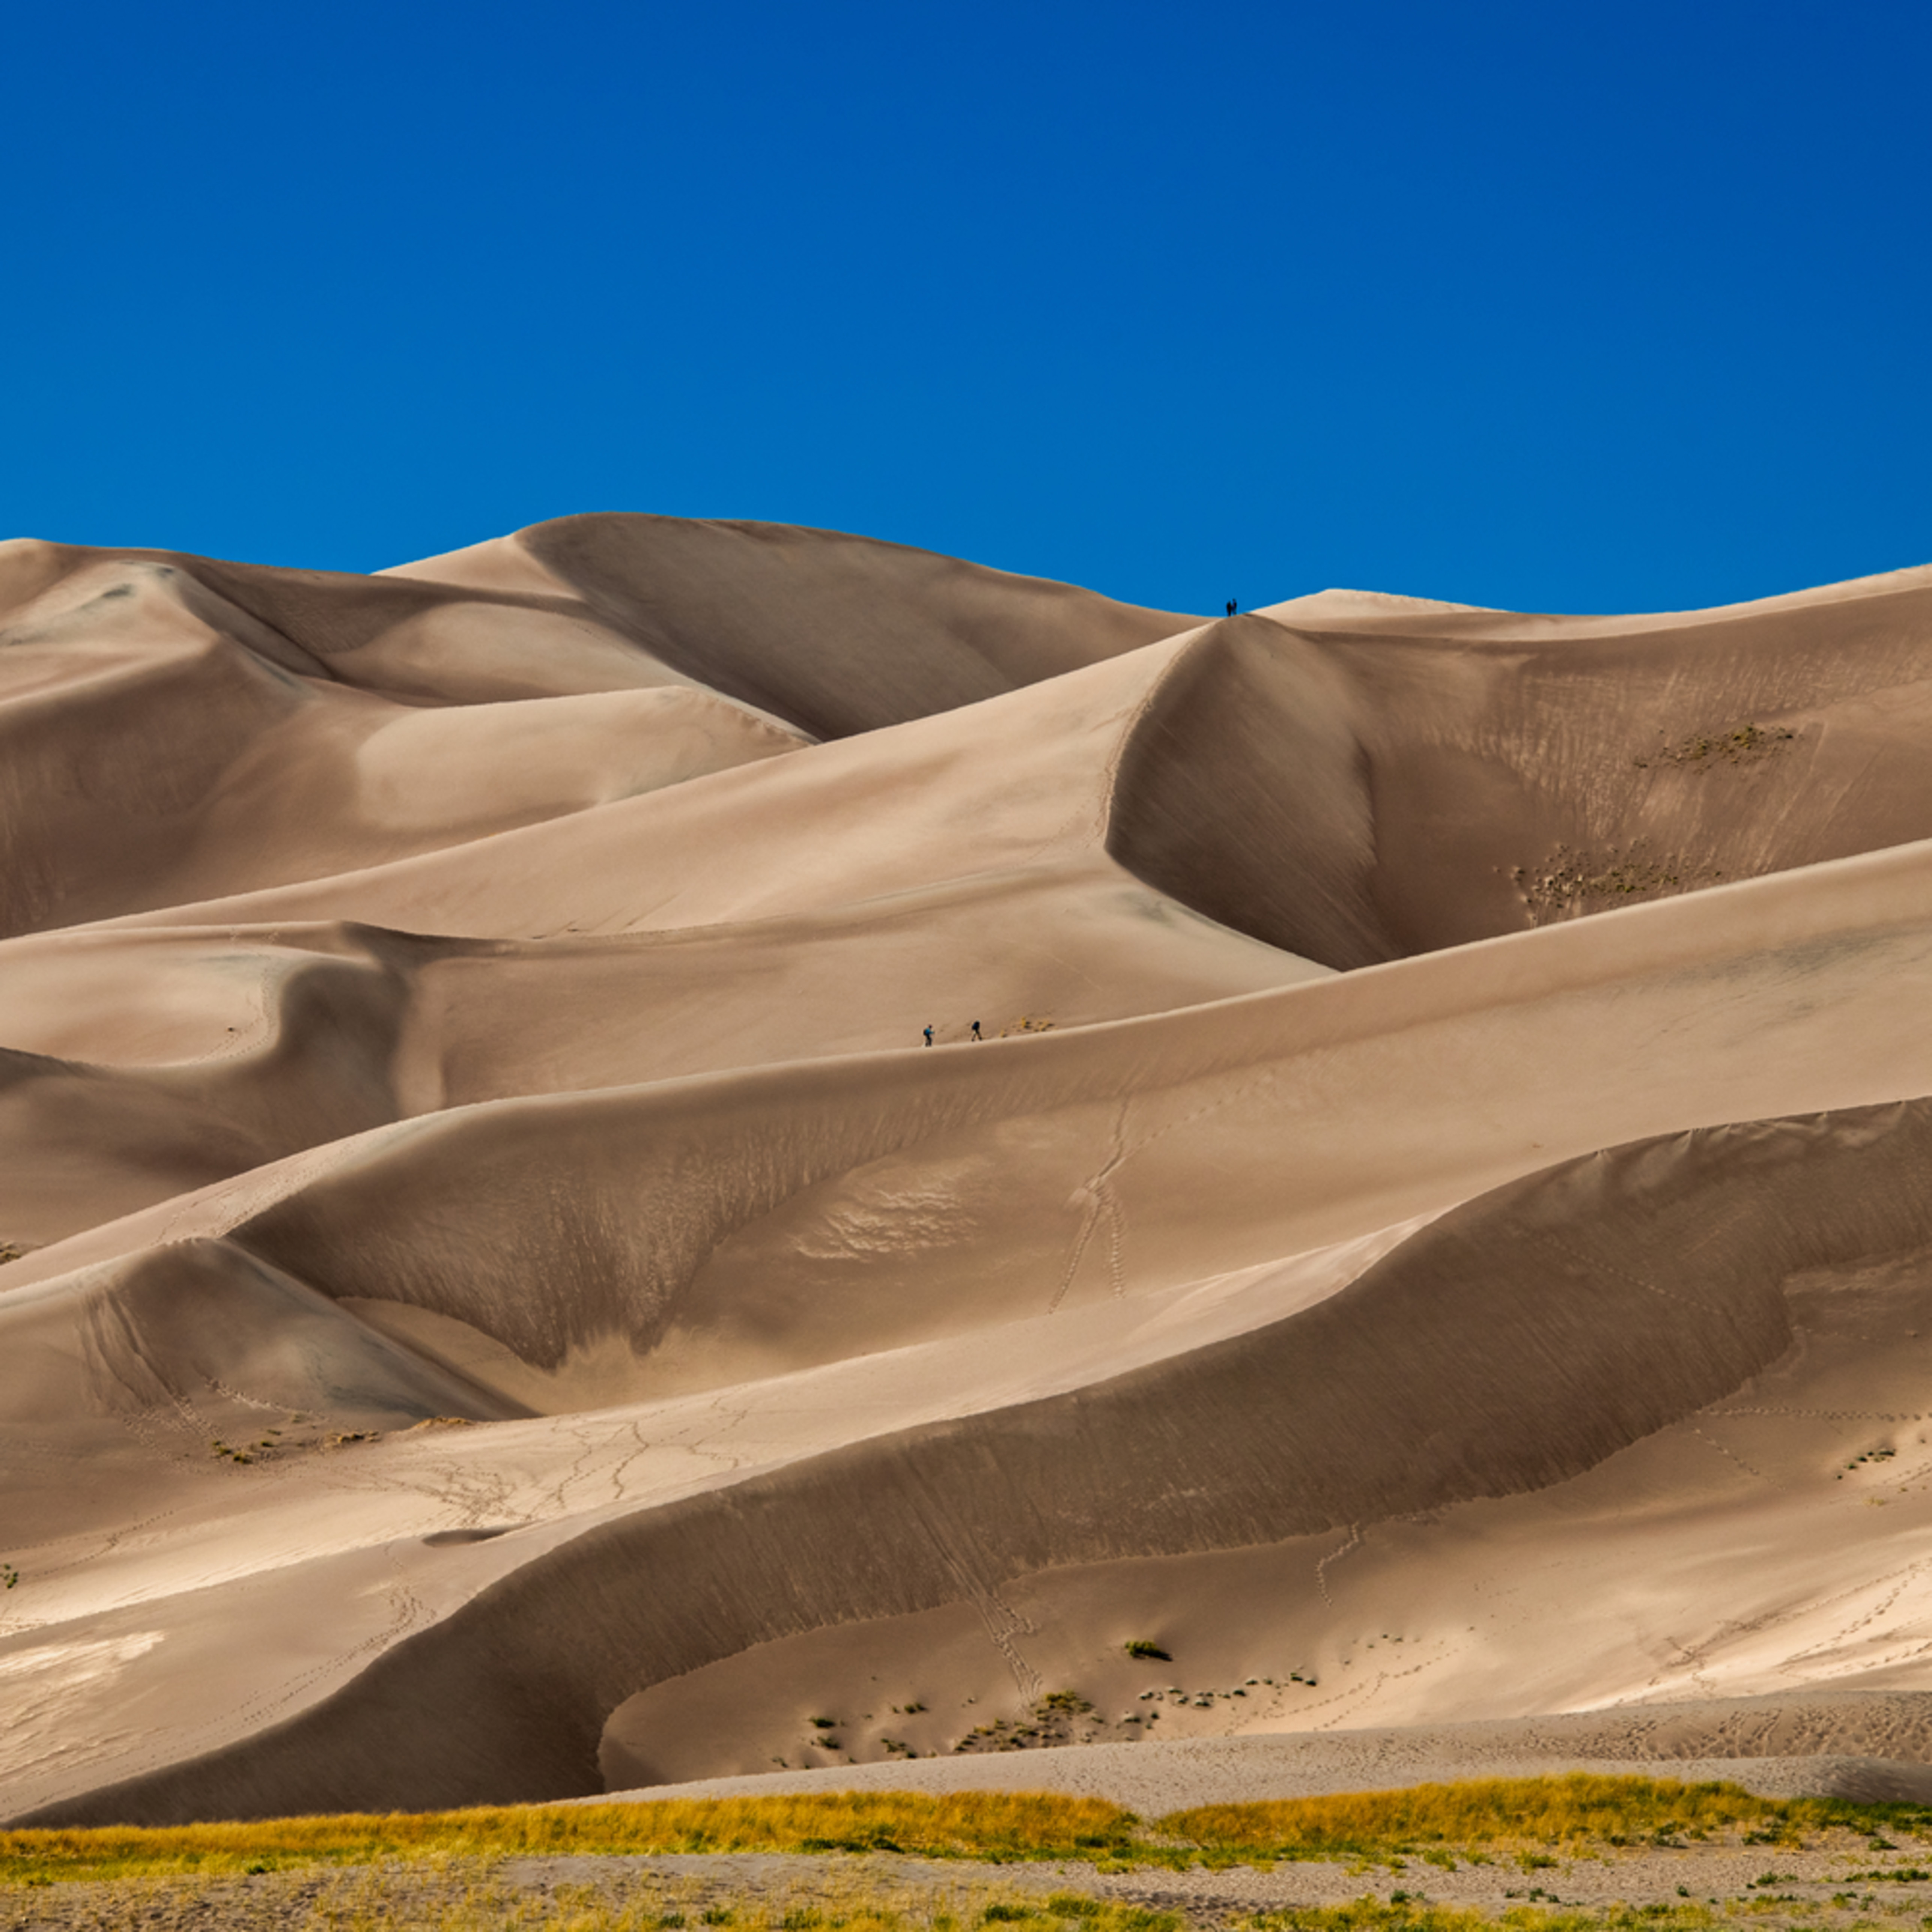 Andy crawford photography colorado great sand dunes national park 1 h3l8in